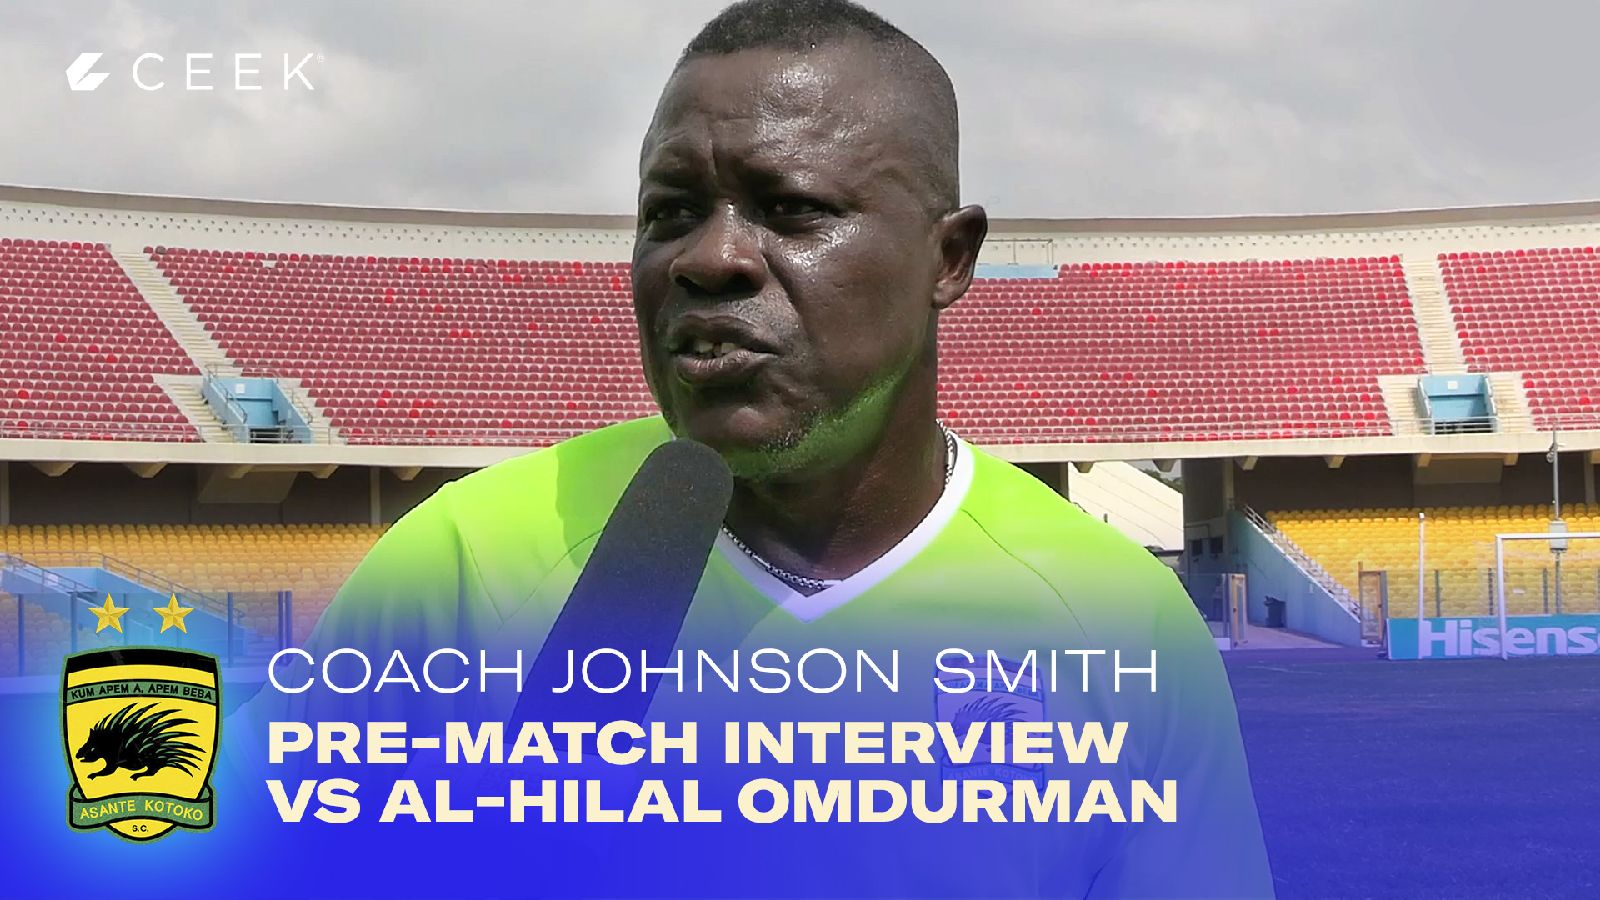 Coach Johnson Smith - Pre-match interview vrs Al-Hilal Omdurman